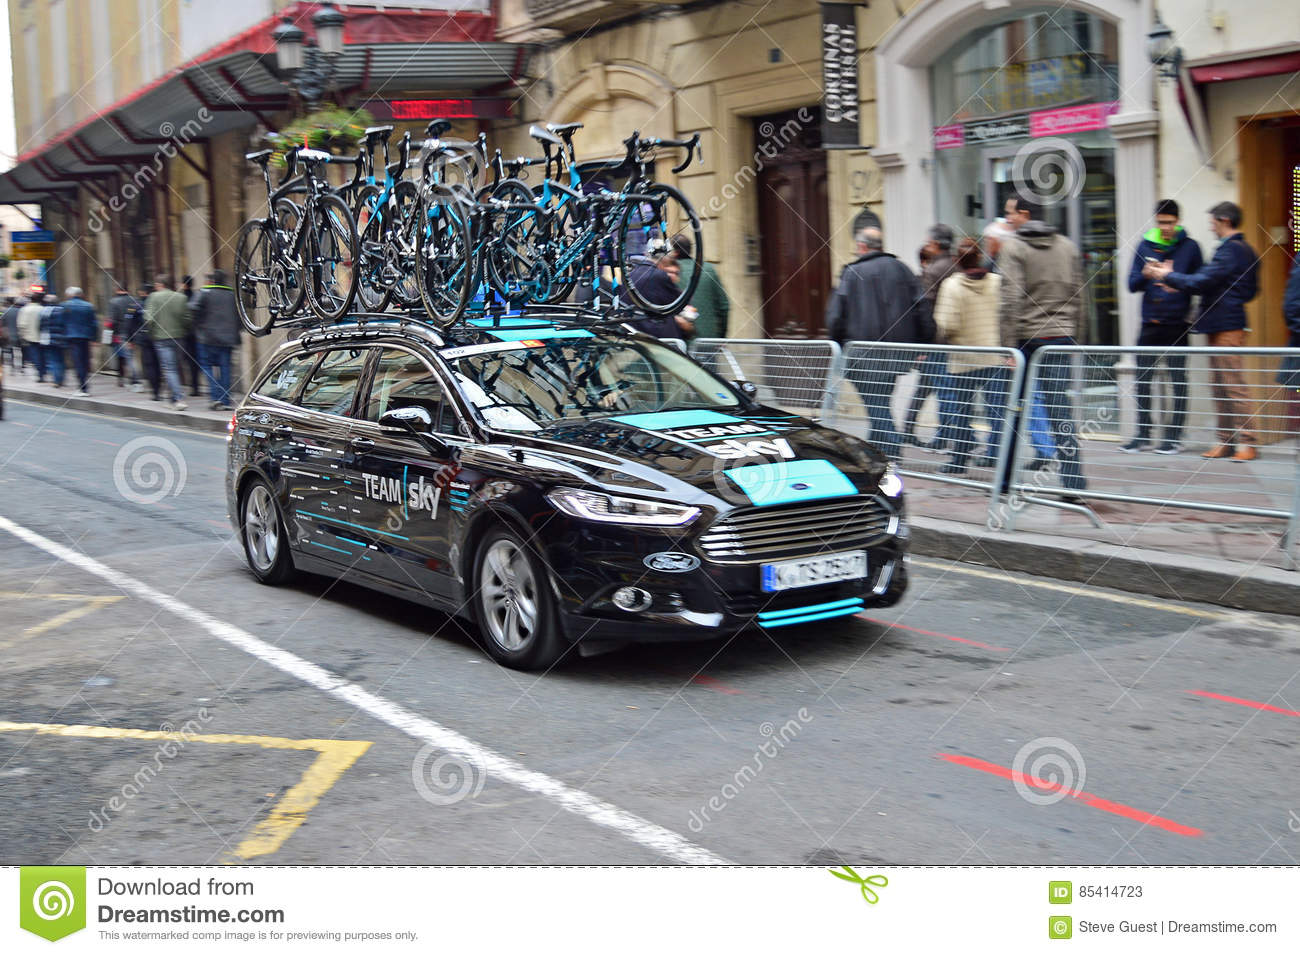 Cycling Team Sky Car And Bikes